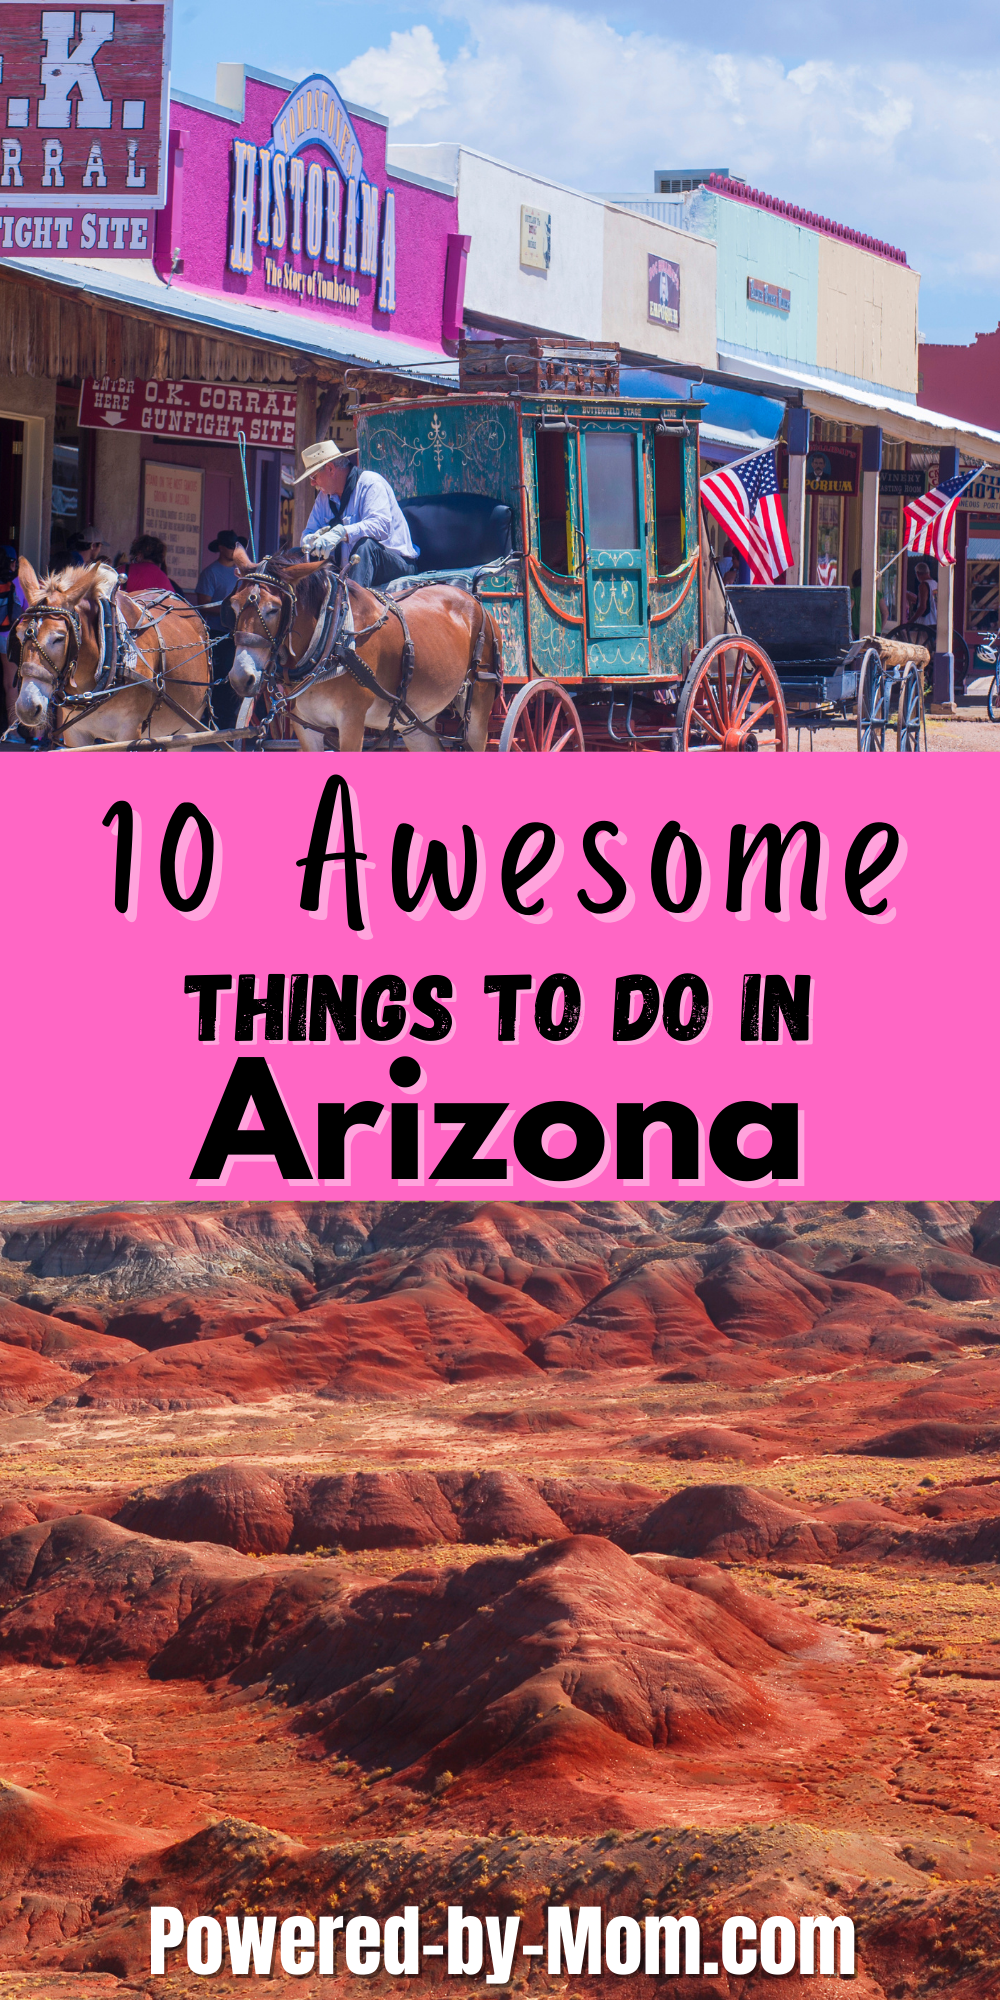 If you're planning a big vacation to Arizona, you definitely don't want to miss anything. Here are ten awesome ideas for your next visit!